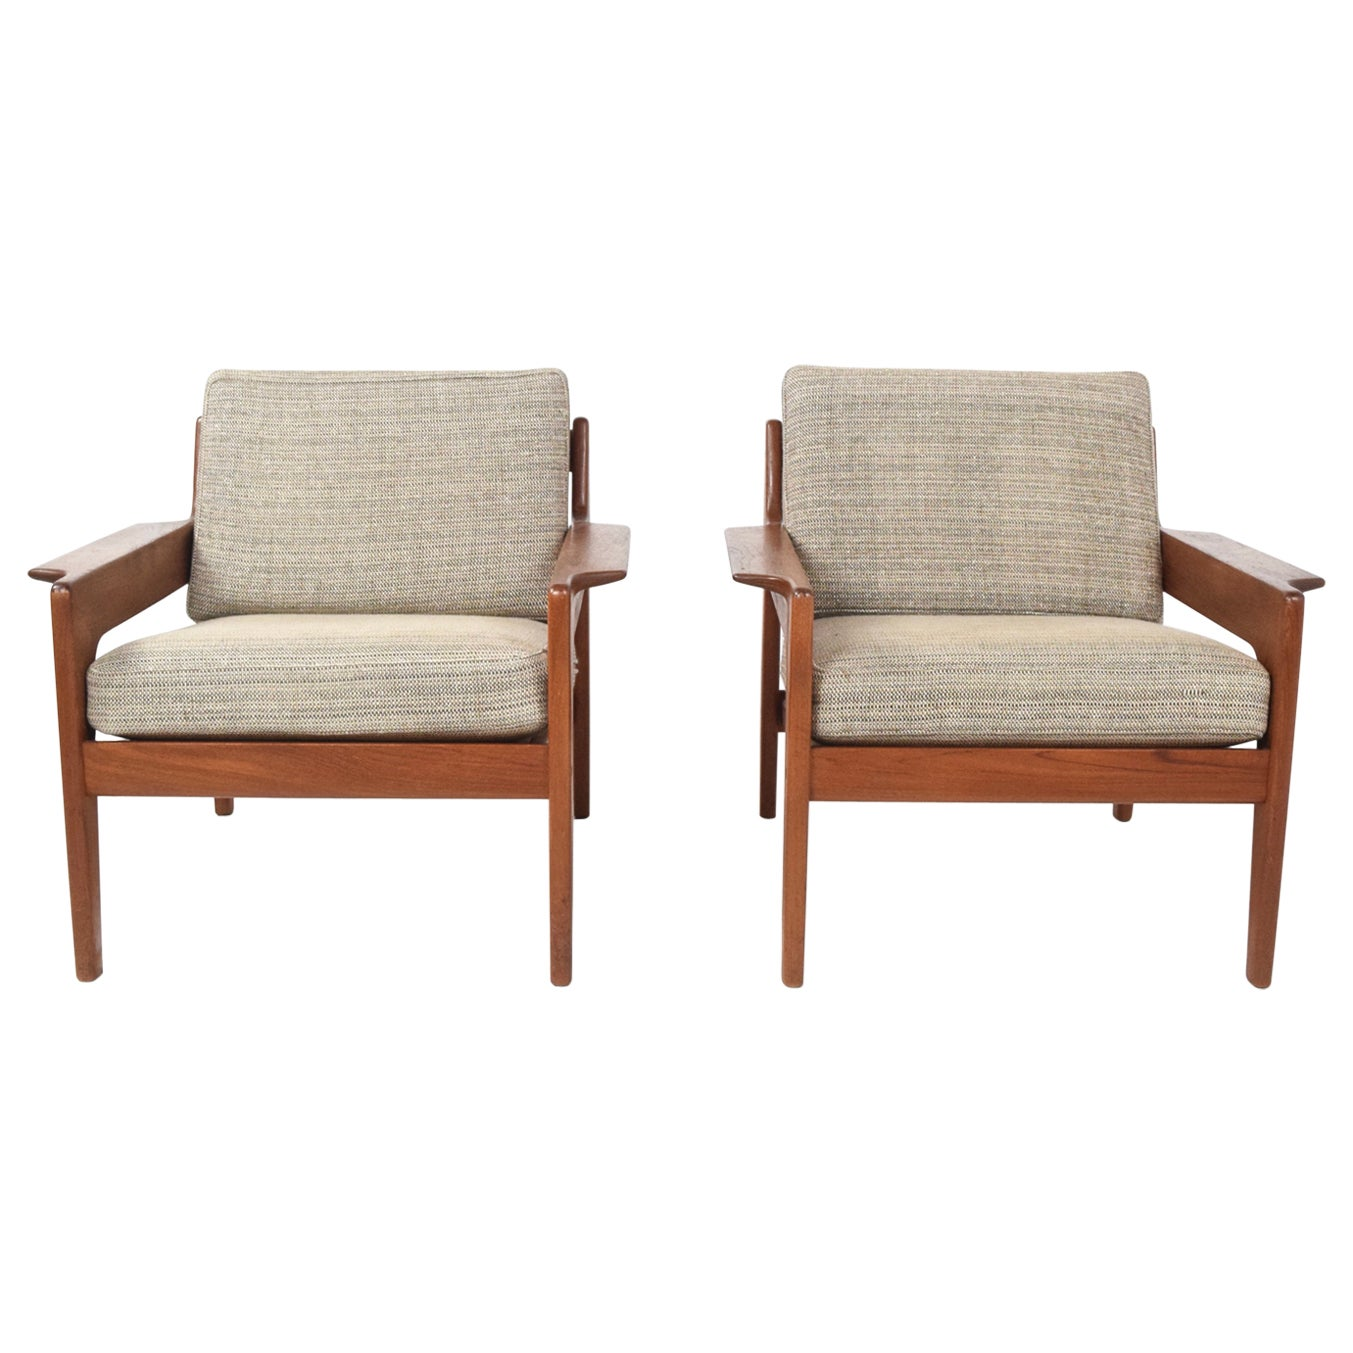 Set of Two Arne Wahl Iversen Lounge Chairs for Komfort, Denmark 1960s